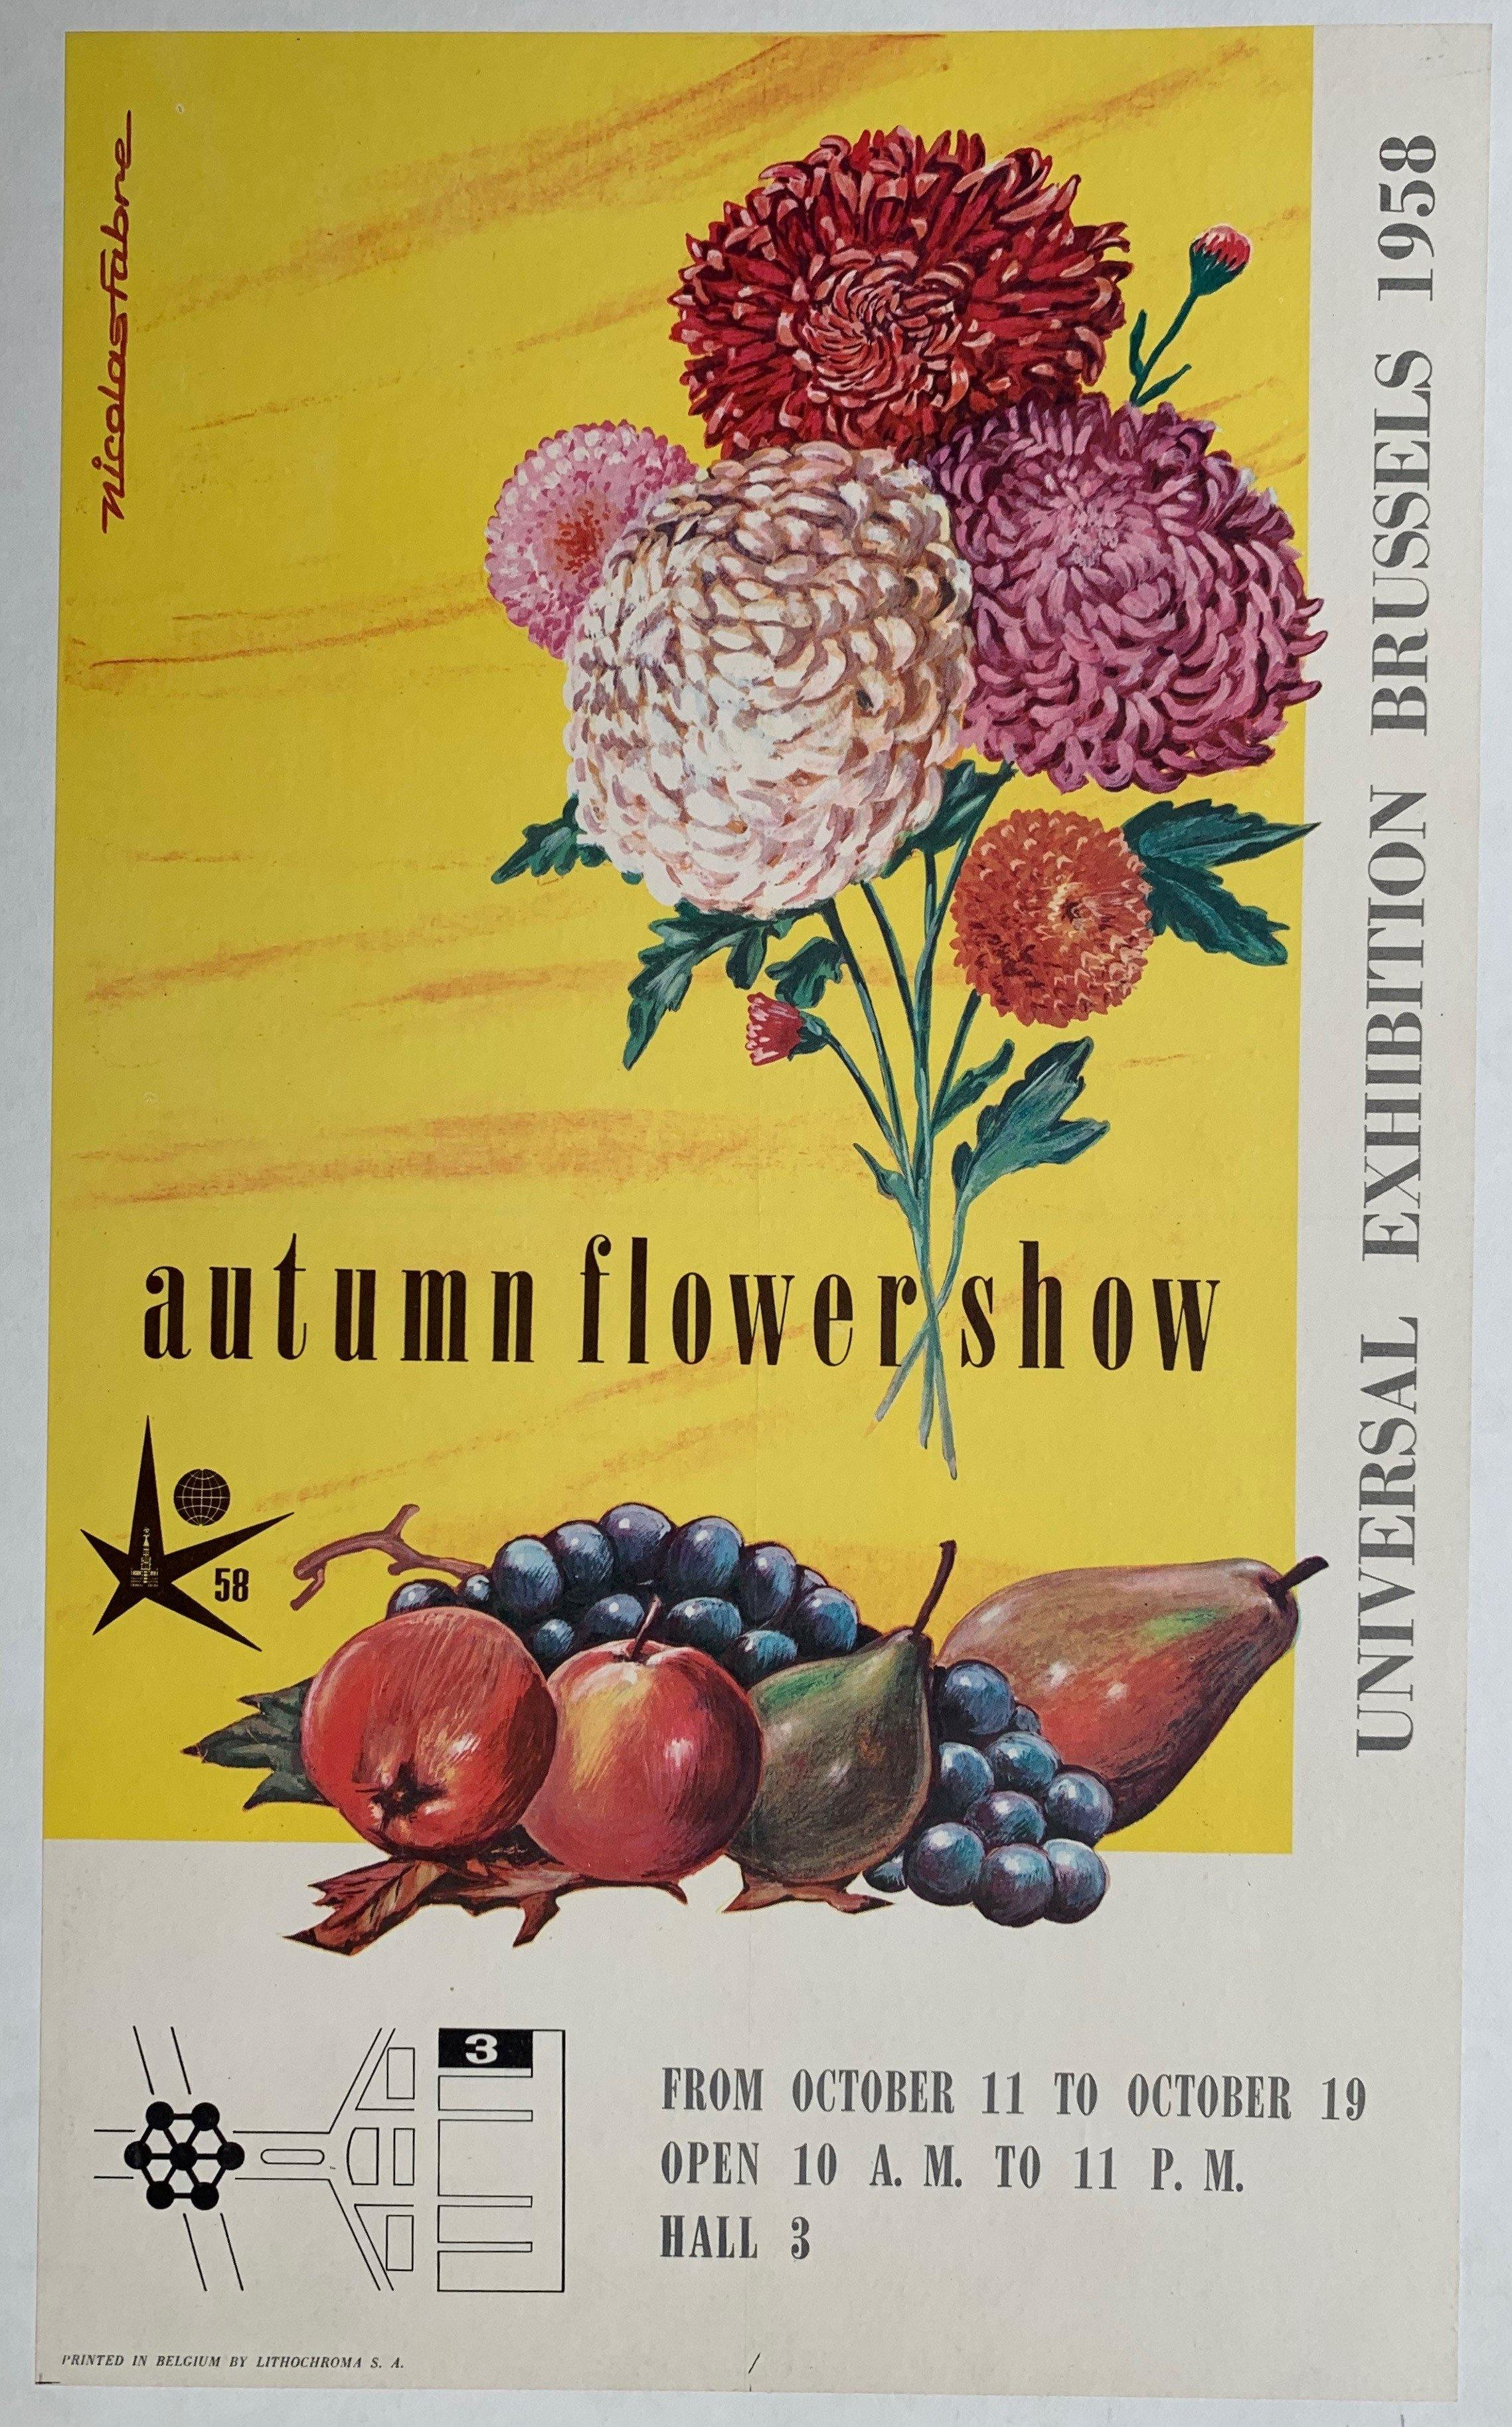 Autumn Flower Show